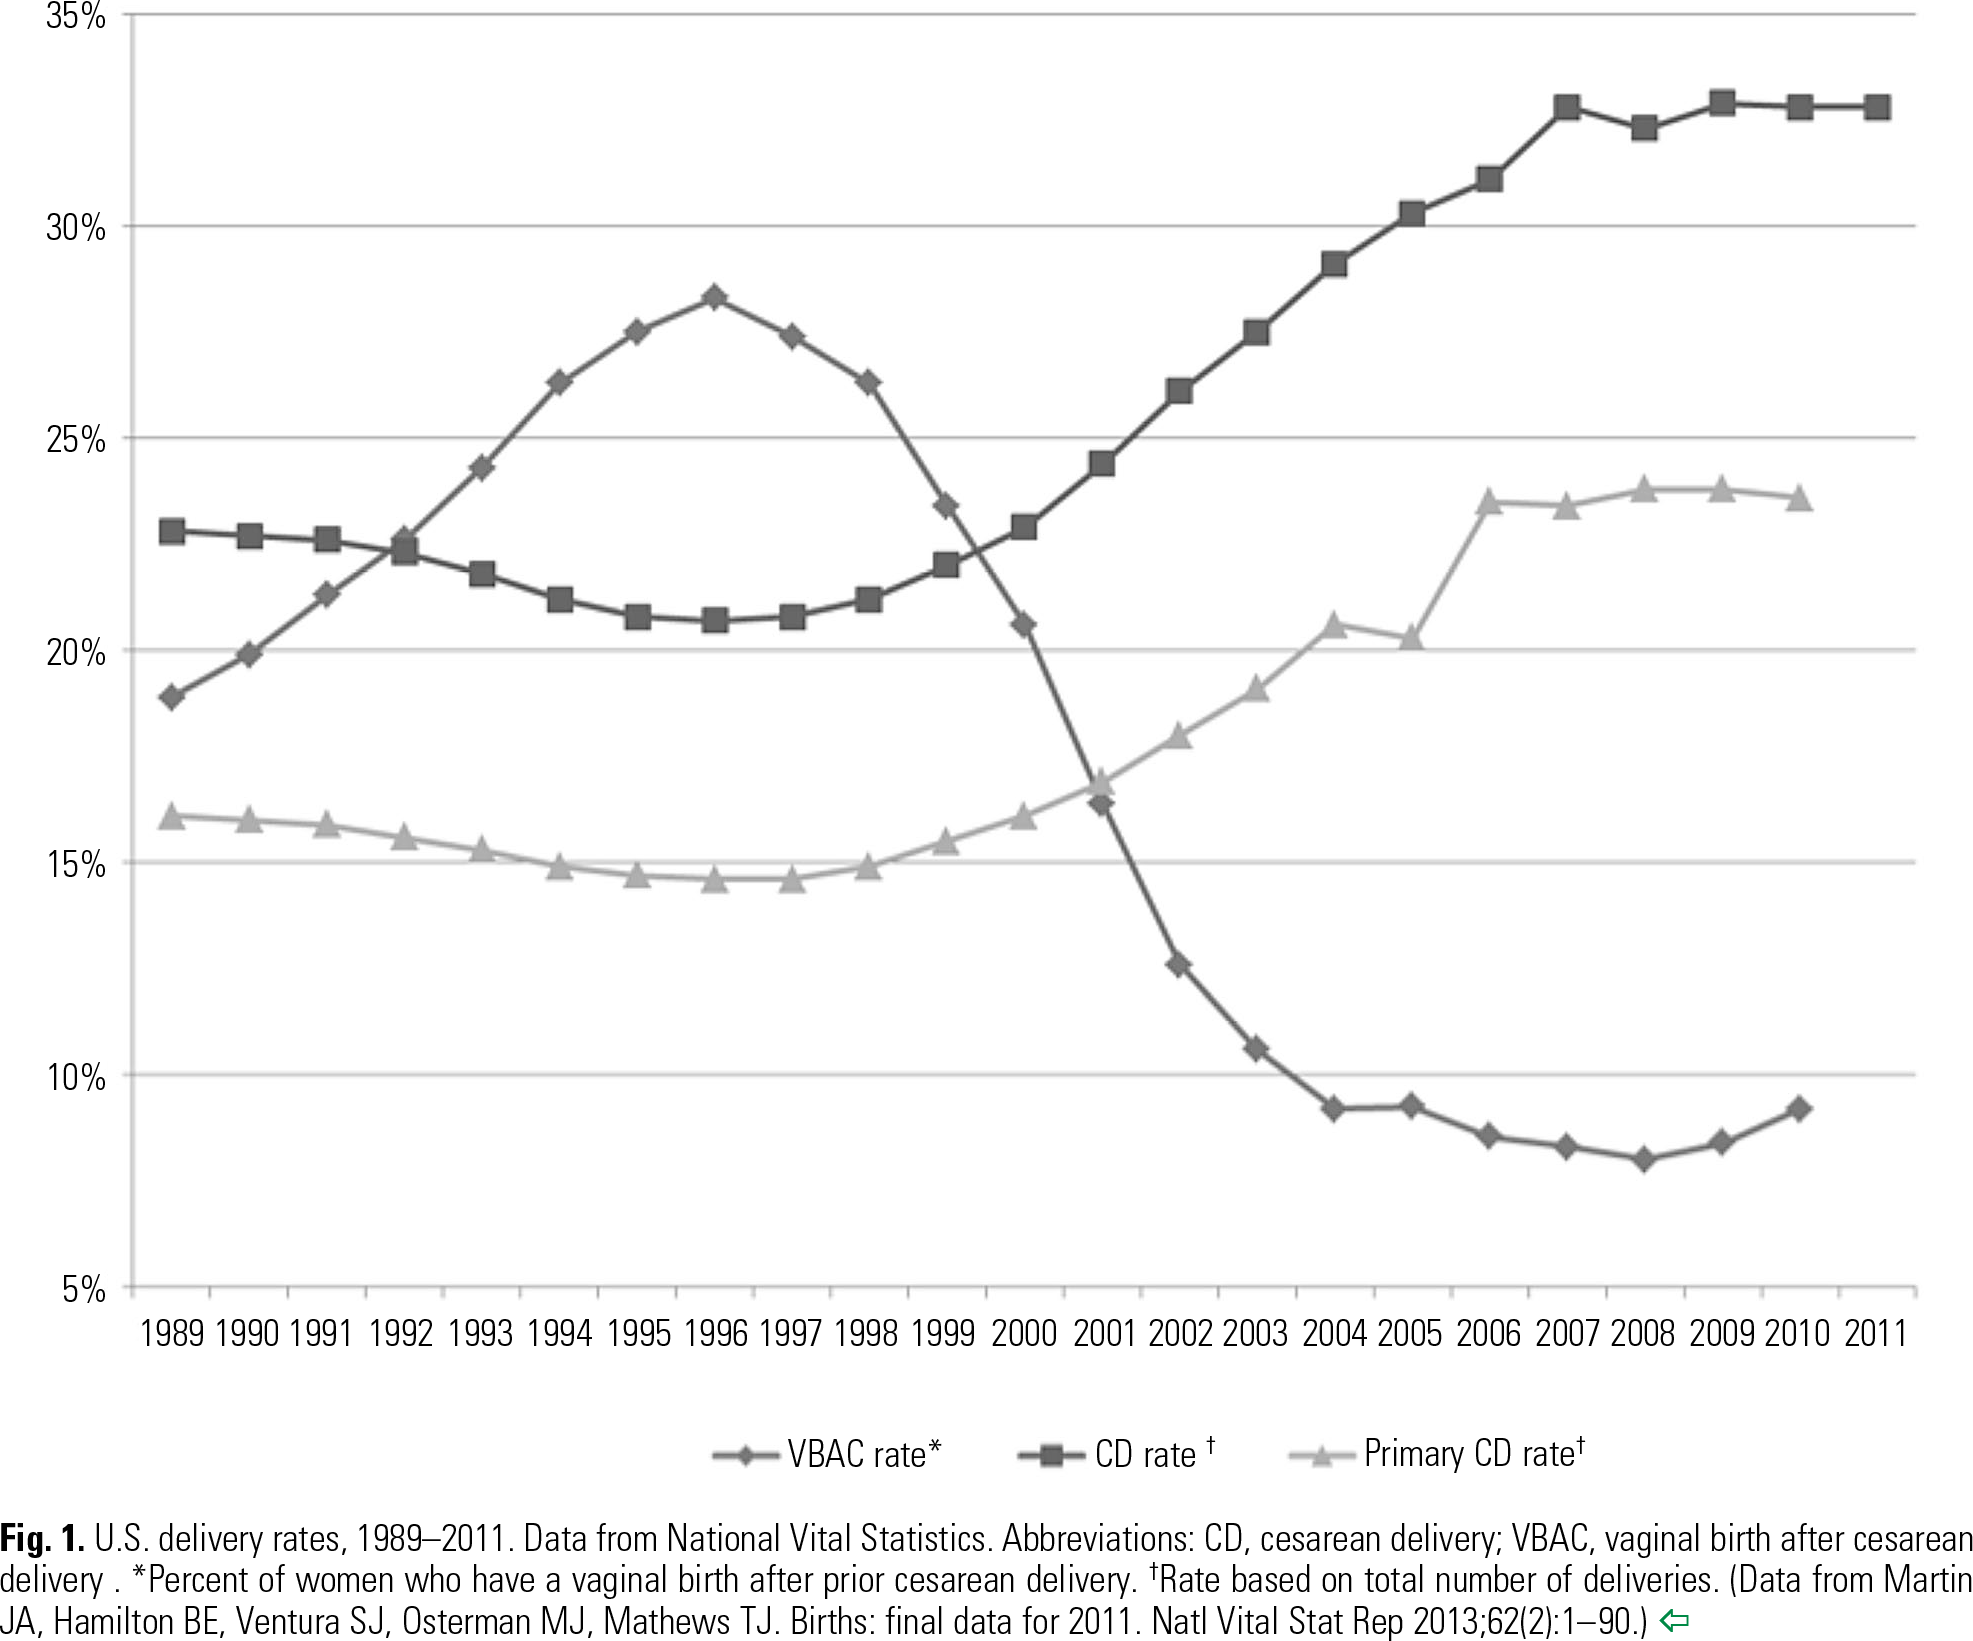 Fig. 1 U.S. delivery rates, 1989–2011. Data from National Vital Statistics. Abbreviations: CD, cesarean delivery; VBAC, vaginal birth after cesarean delivery . *Percent of women who have a vaginal birth after prior cesarean delivery. † Rate based on total number of deliveries. (Data from Martin JA, Hamilton BE, Ventura SJ, Osterman MJ, Mathews TJ. Births: final data for 2011. Natl Vital Stat Rep 2013;62( 2 ):1–90.)